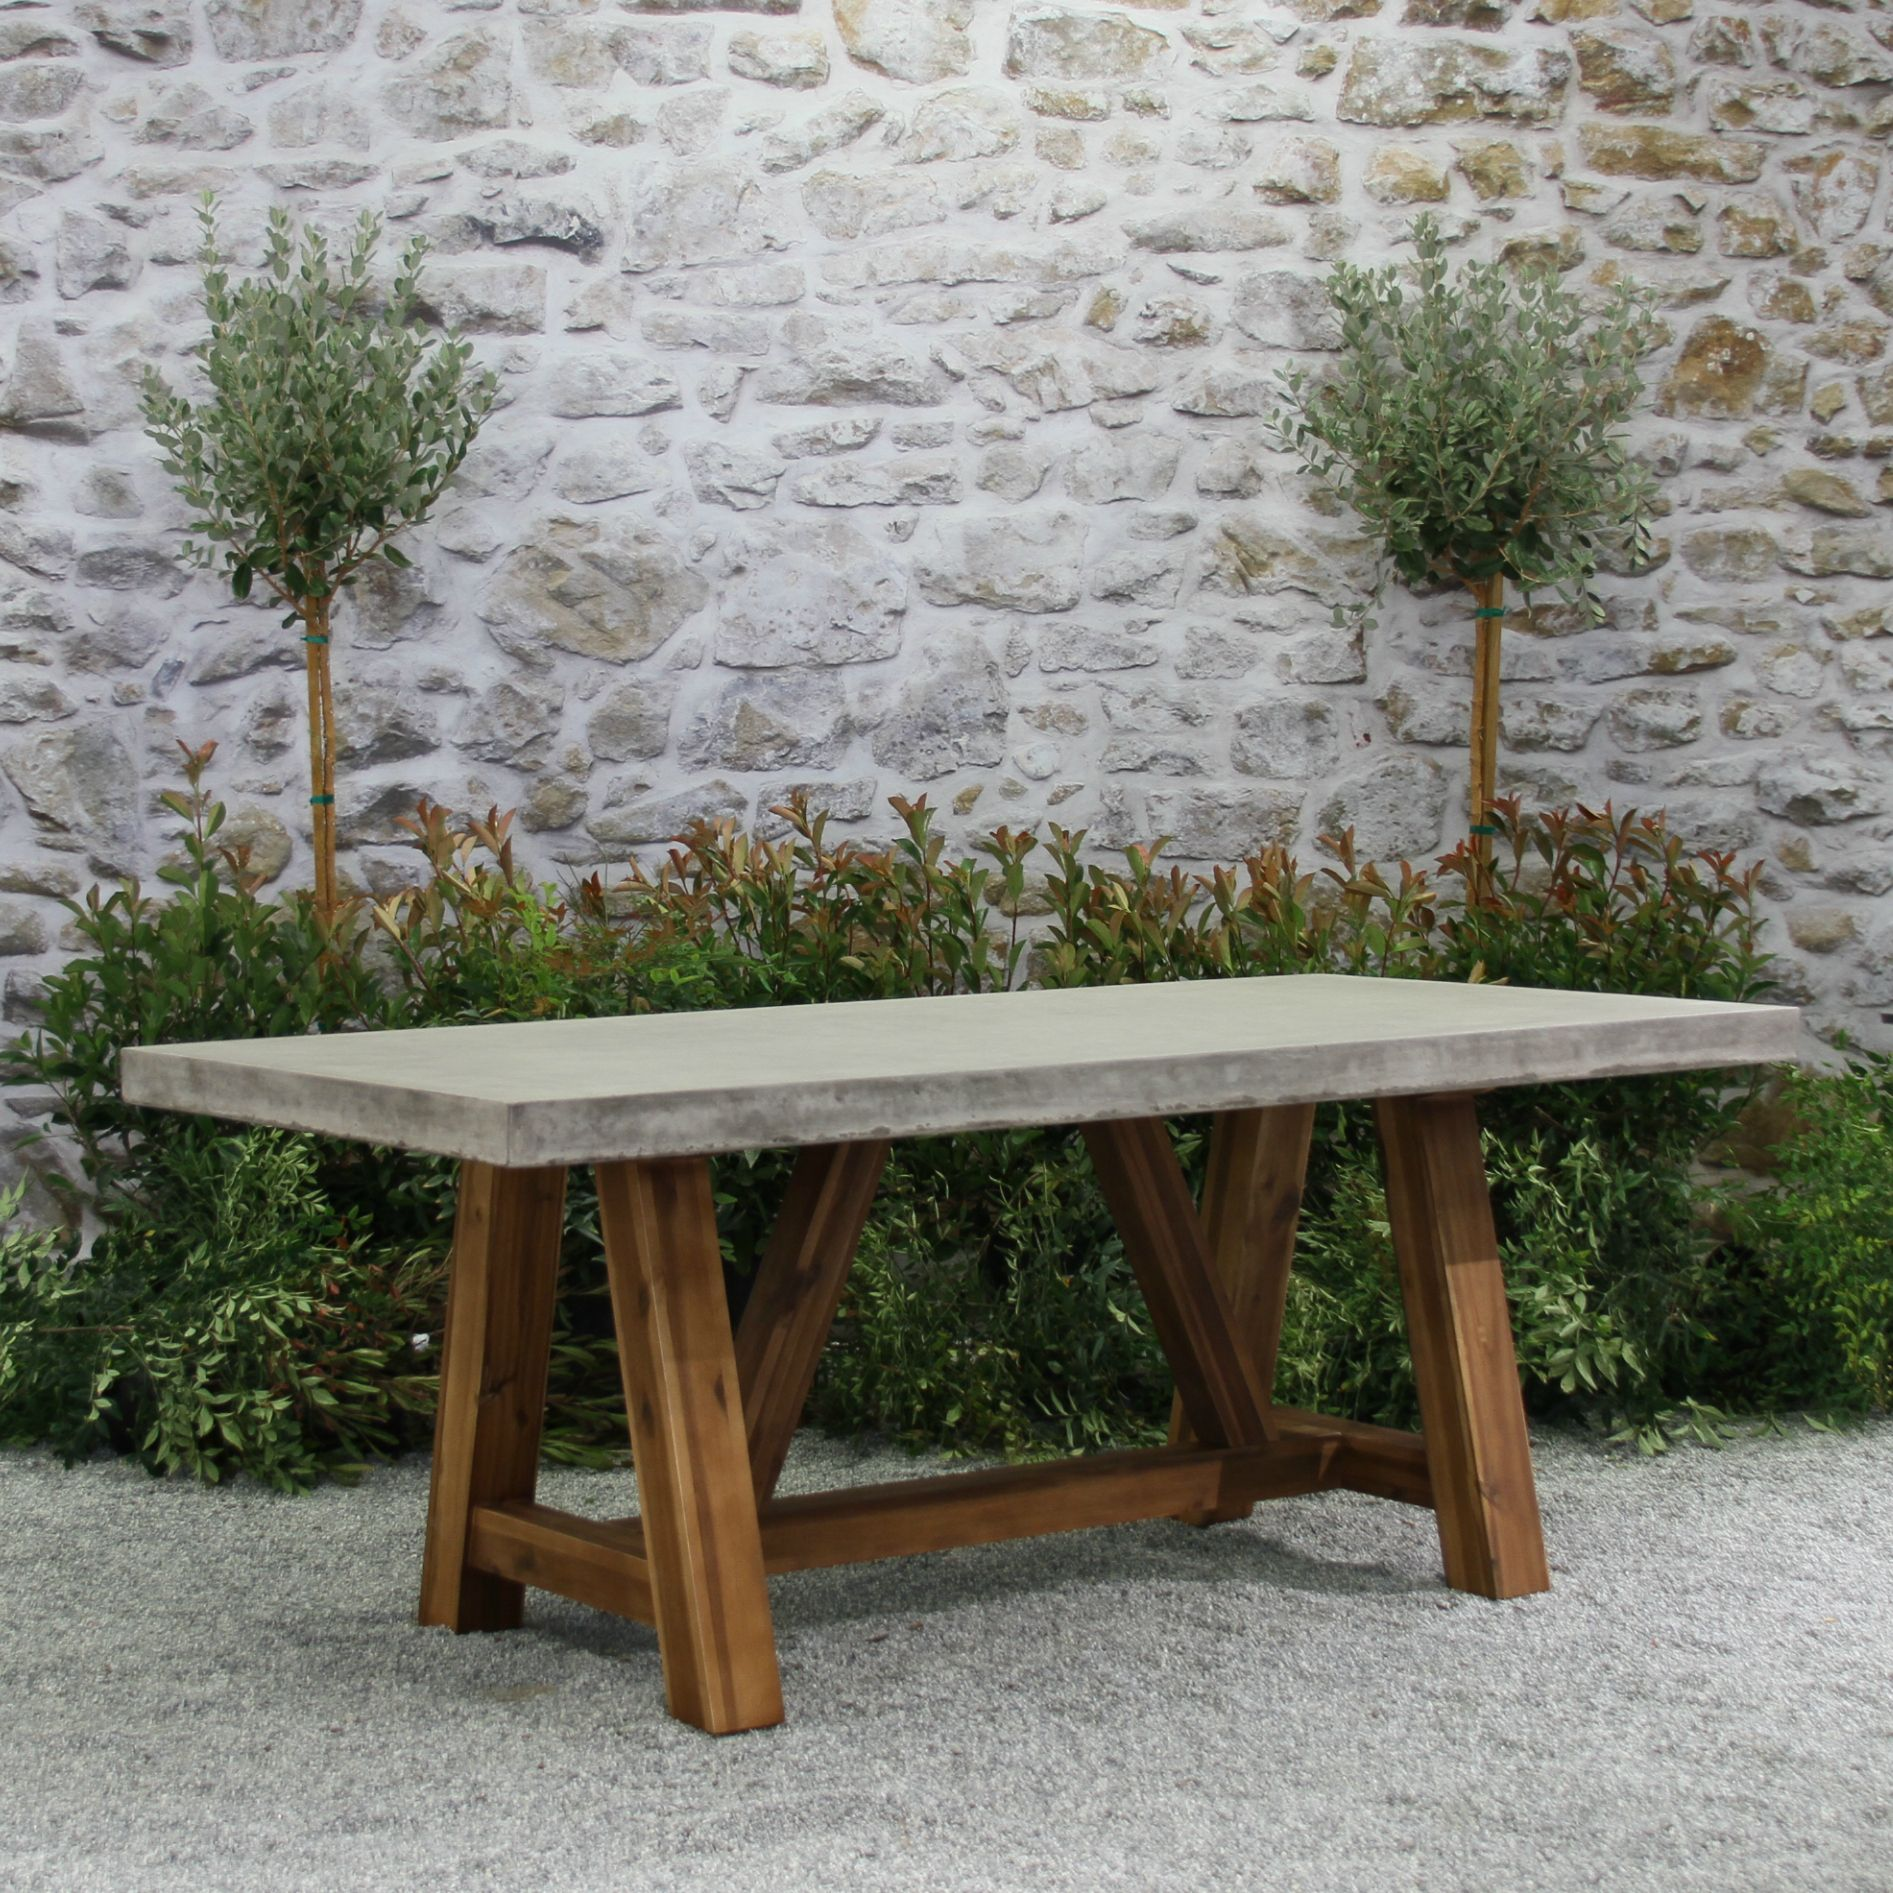 Outside Tables And Chairs Bordeaux Table Concrete Top 94 In 2019 Furniture Teak